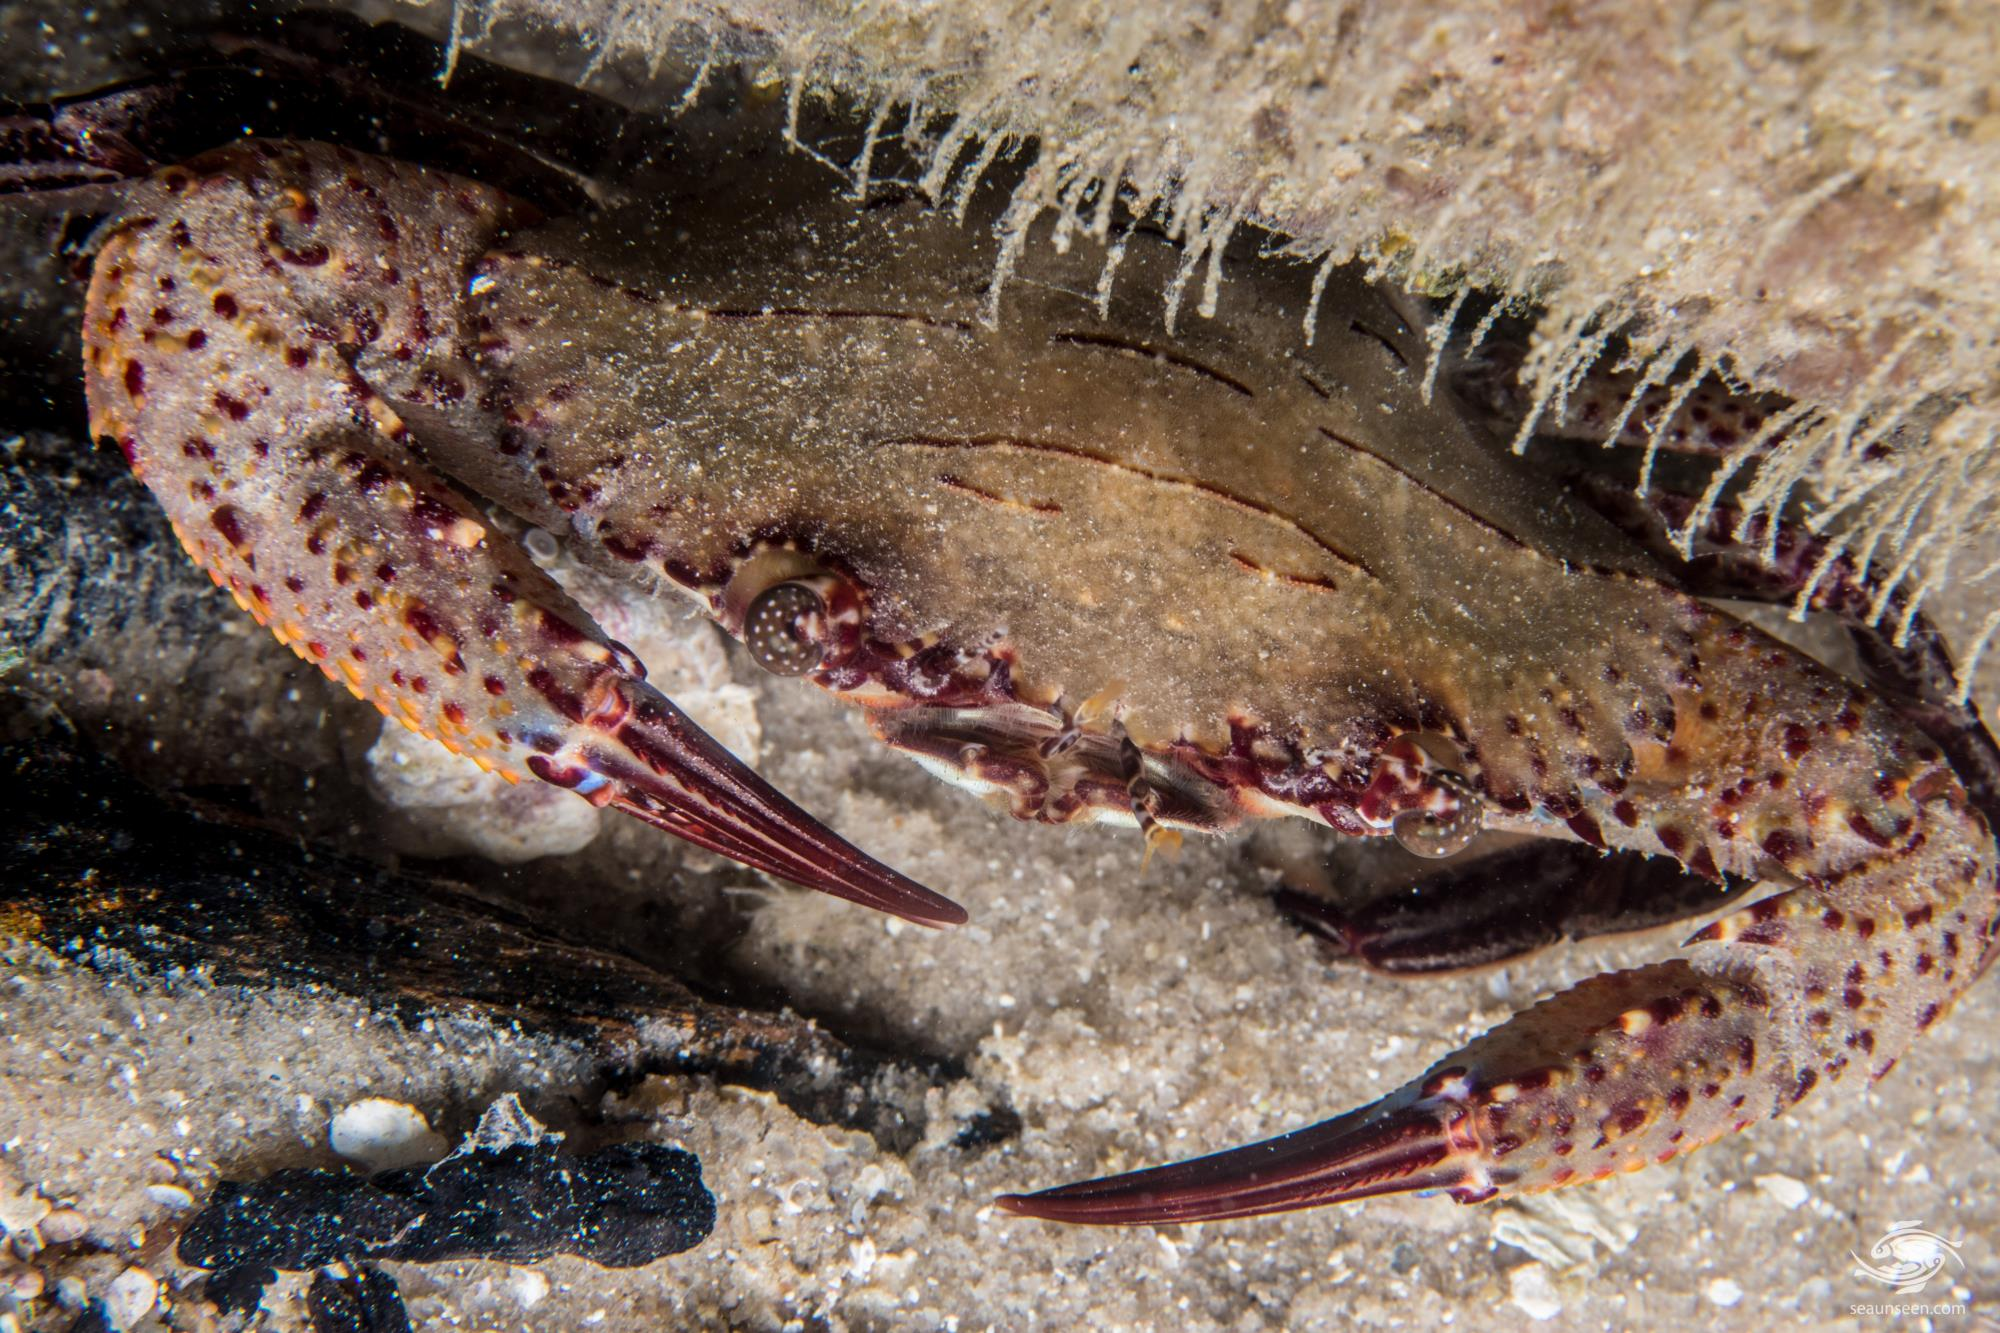 Ridged swimming crab (Charybdis natator) is also known as the wrinkled swimming crab or rock crab